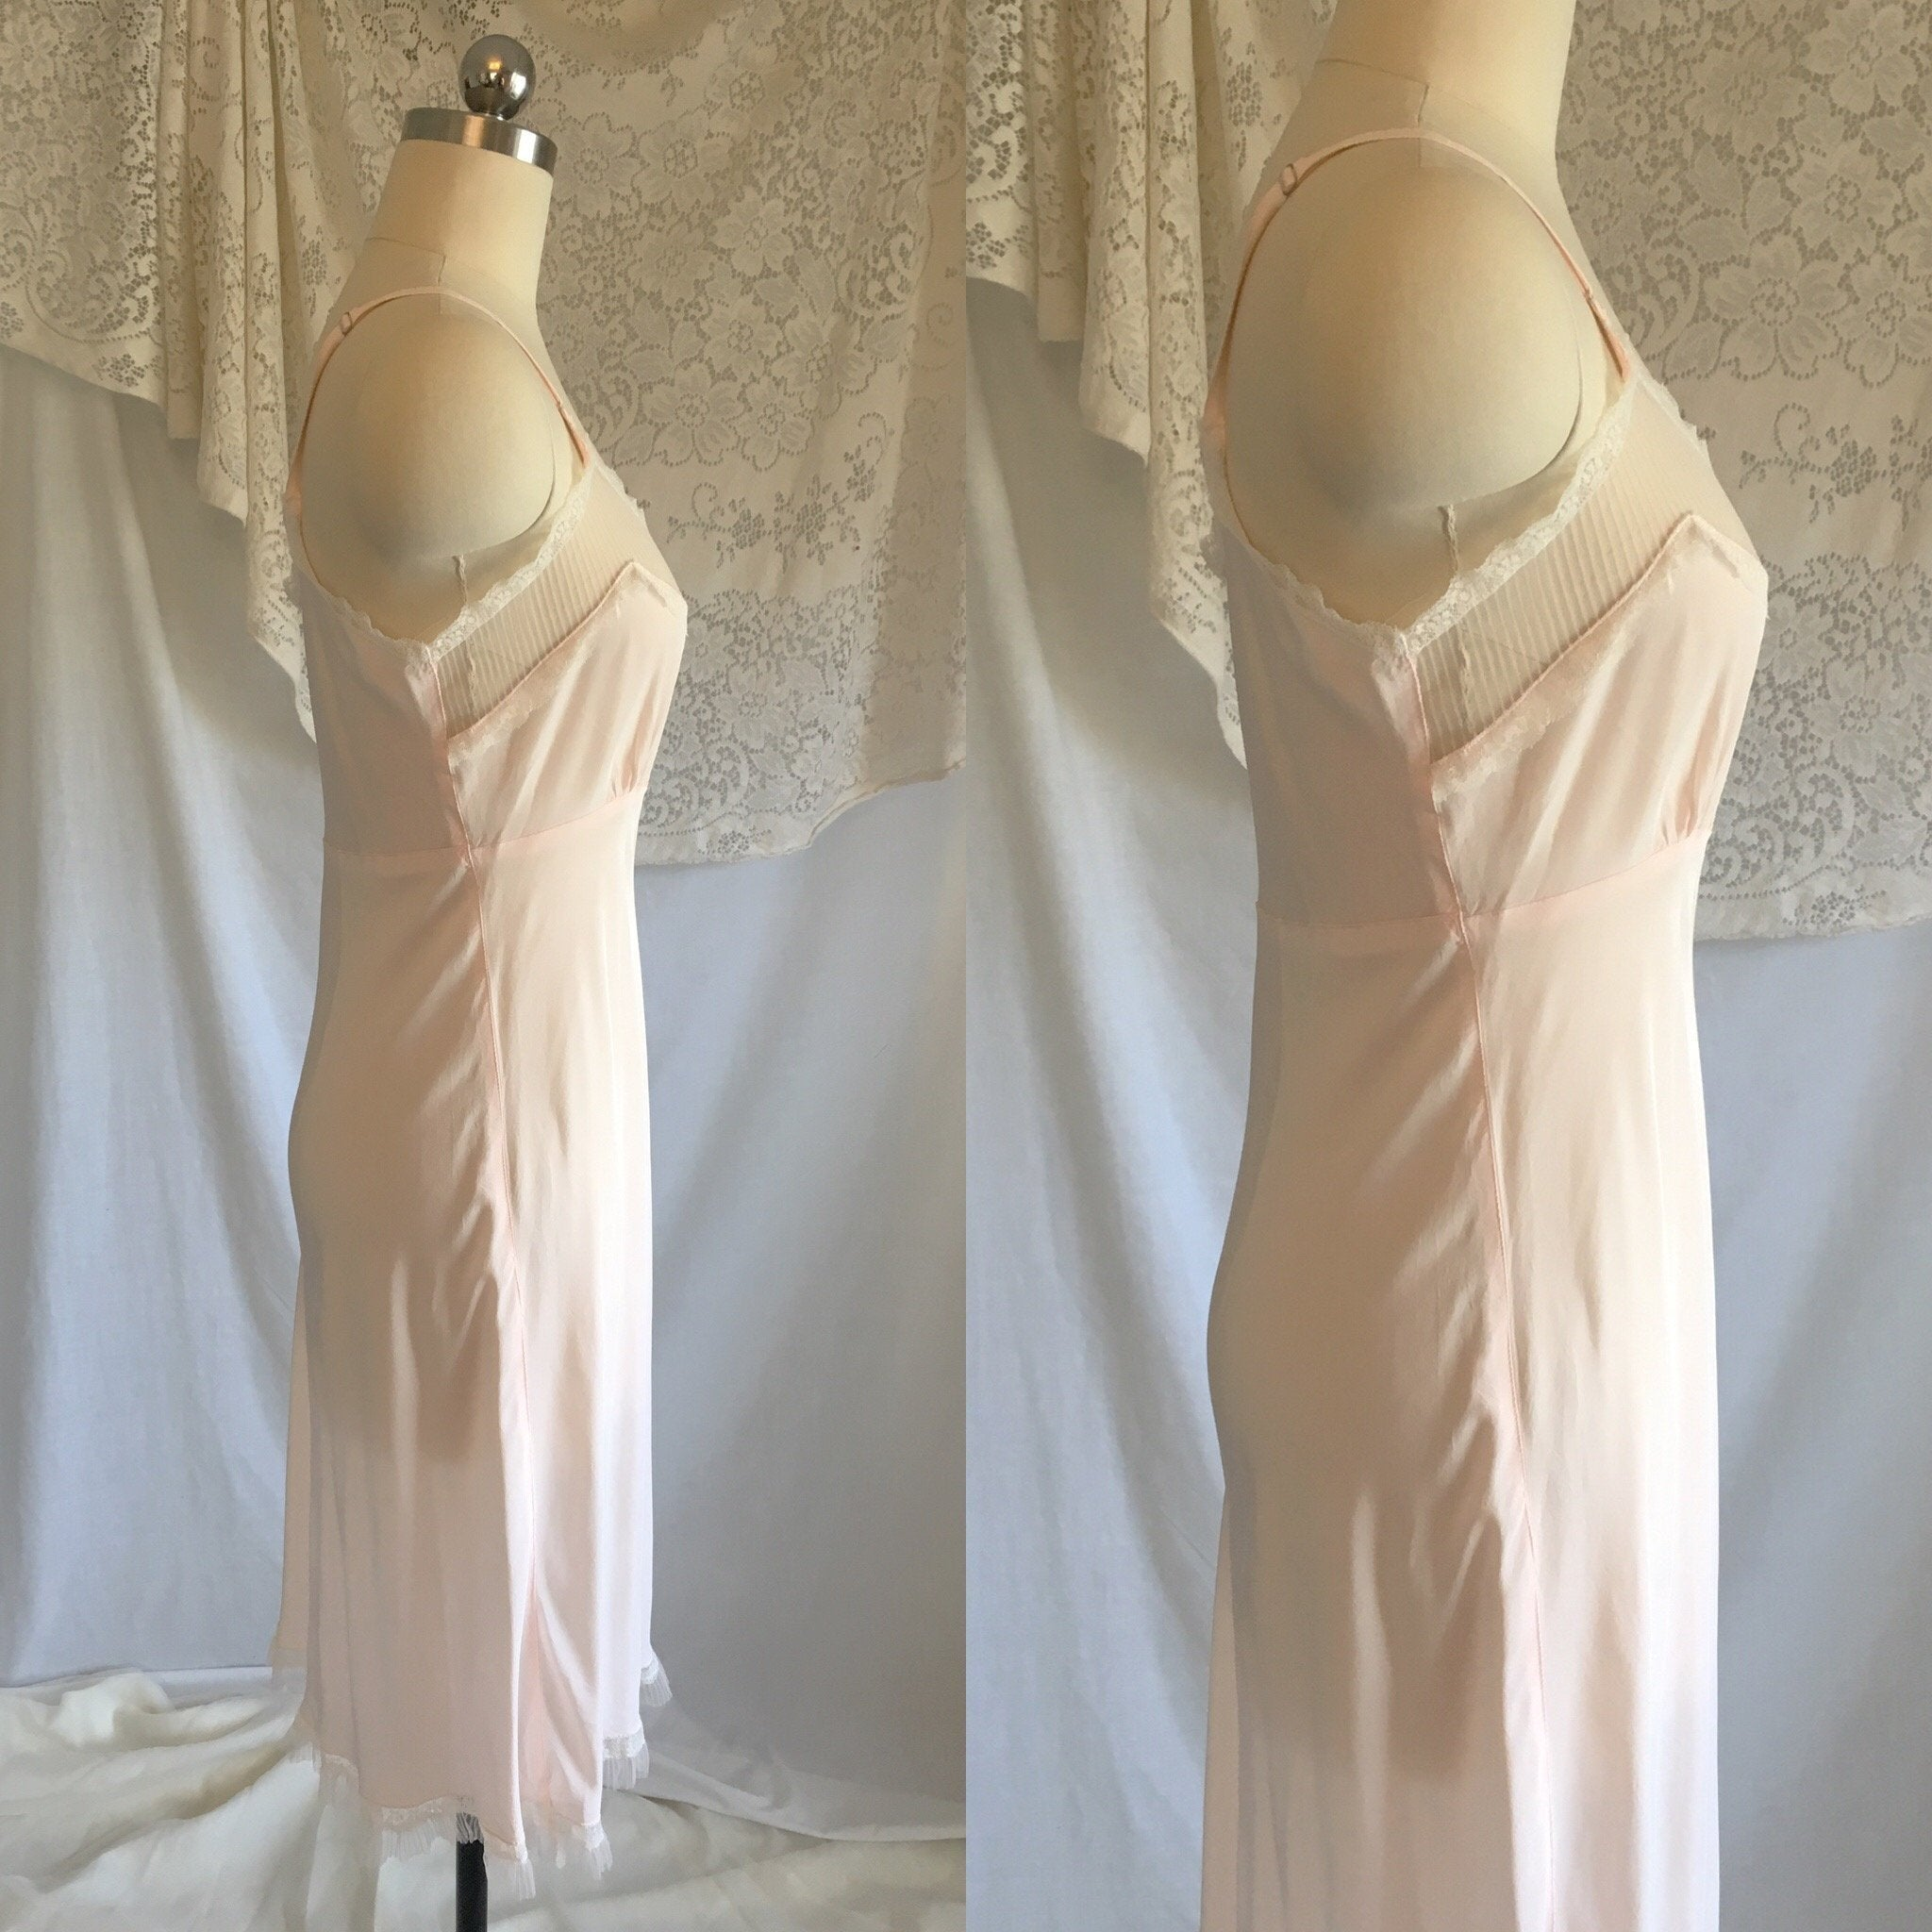 Vintage 1940's Slip | Light Powder Pink Rayon with White Pinstripe Tulle & Ruffled Lace | Lady Elizabeth Underwear | Size S - Daggers & Dames